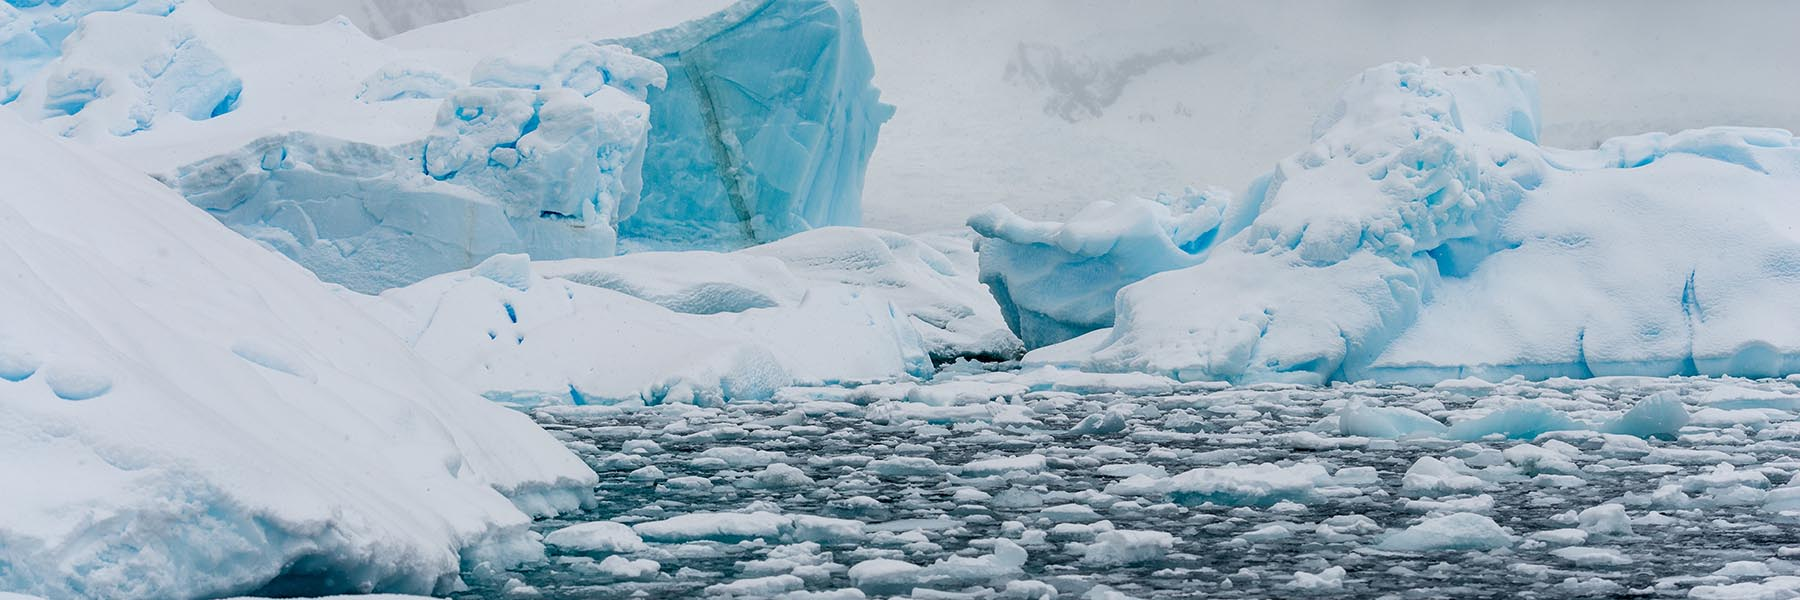 Highlights of Frozen Continent